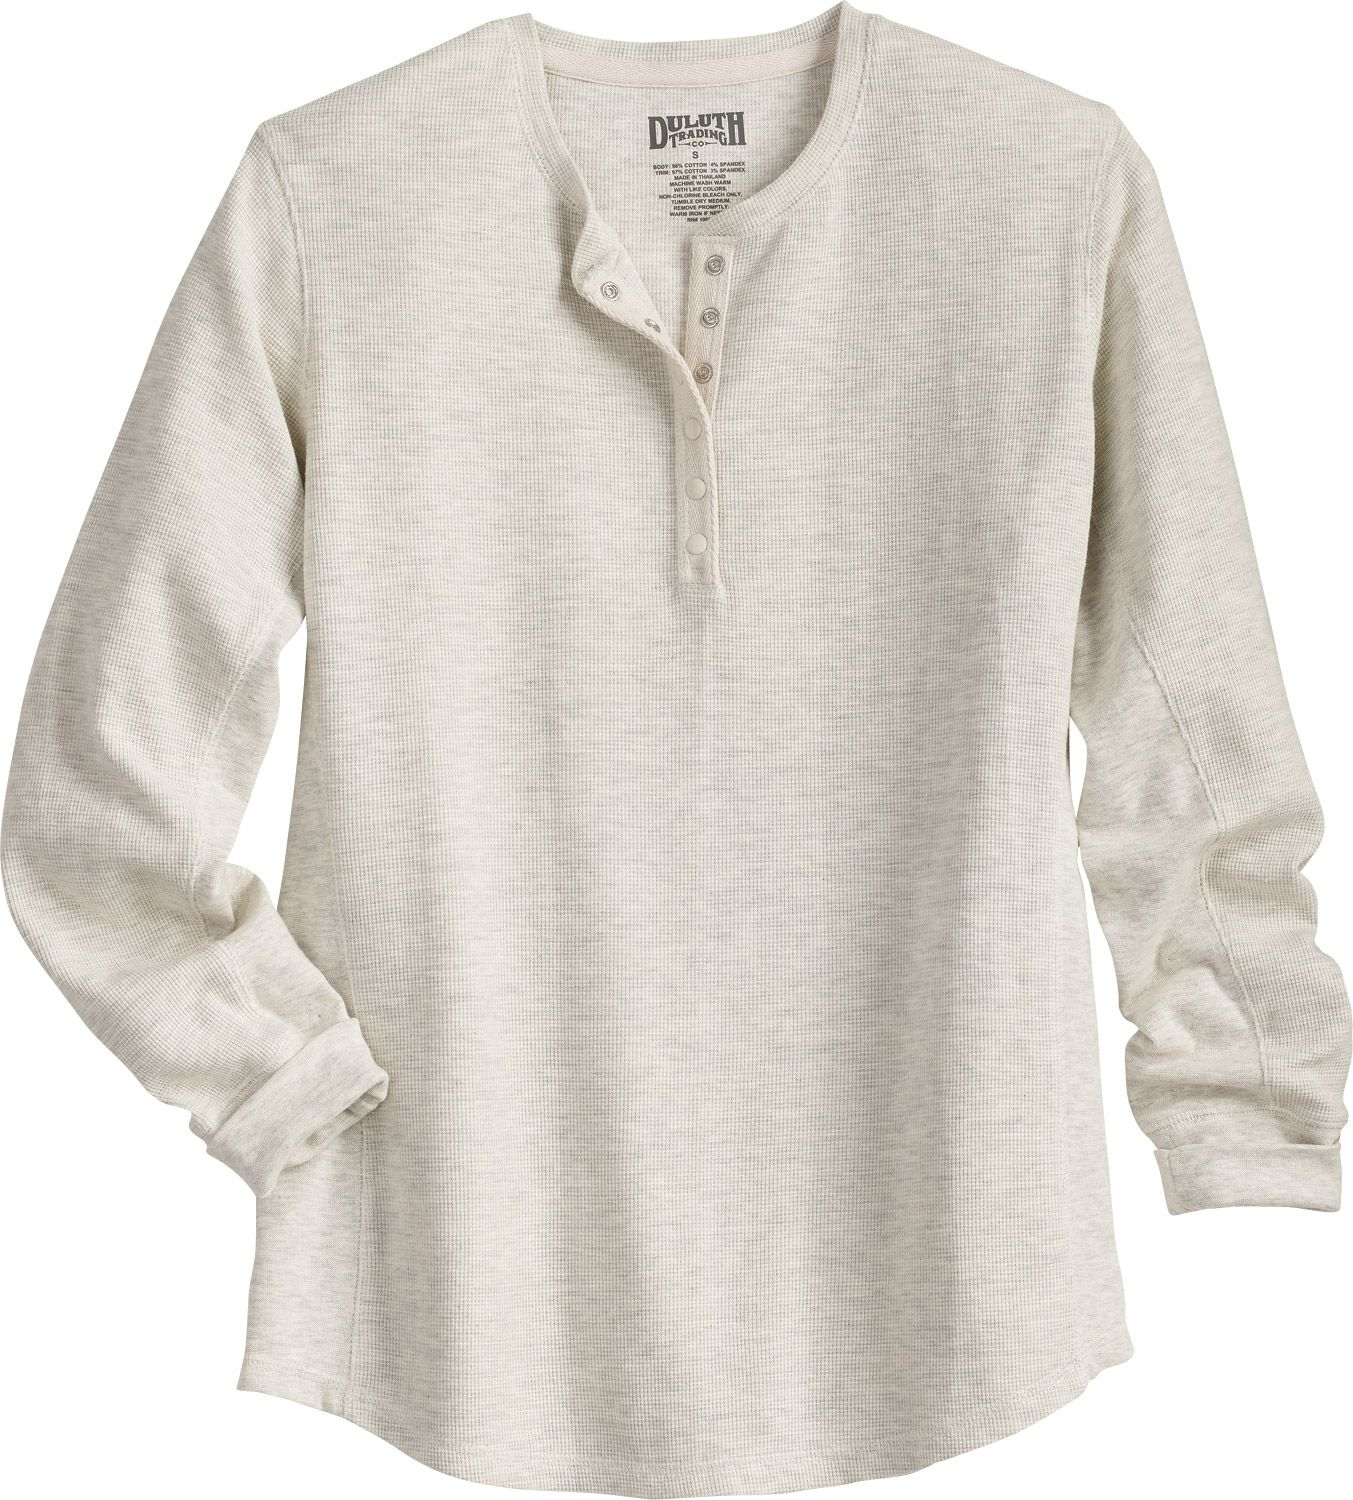 d28af11c Women's Longtail T® Waffle Henley Shirt's thermal grid pattern traps heat  to keep you warm. Plus, rib knit side panels stretch for easy movement!